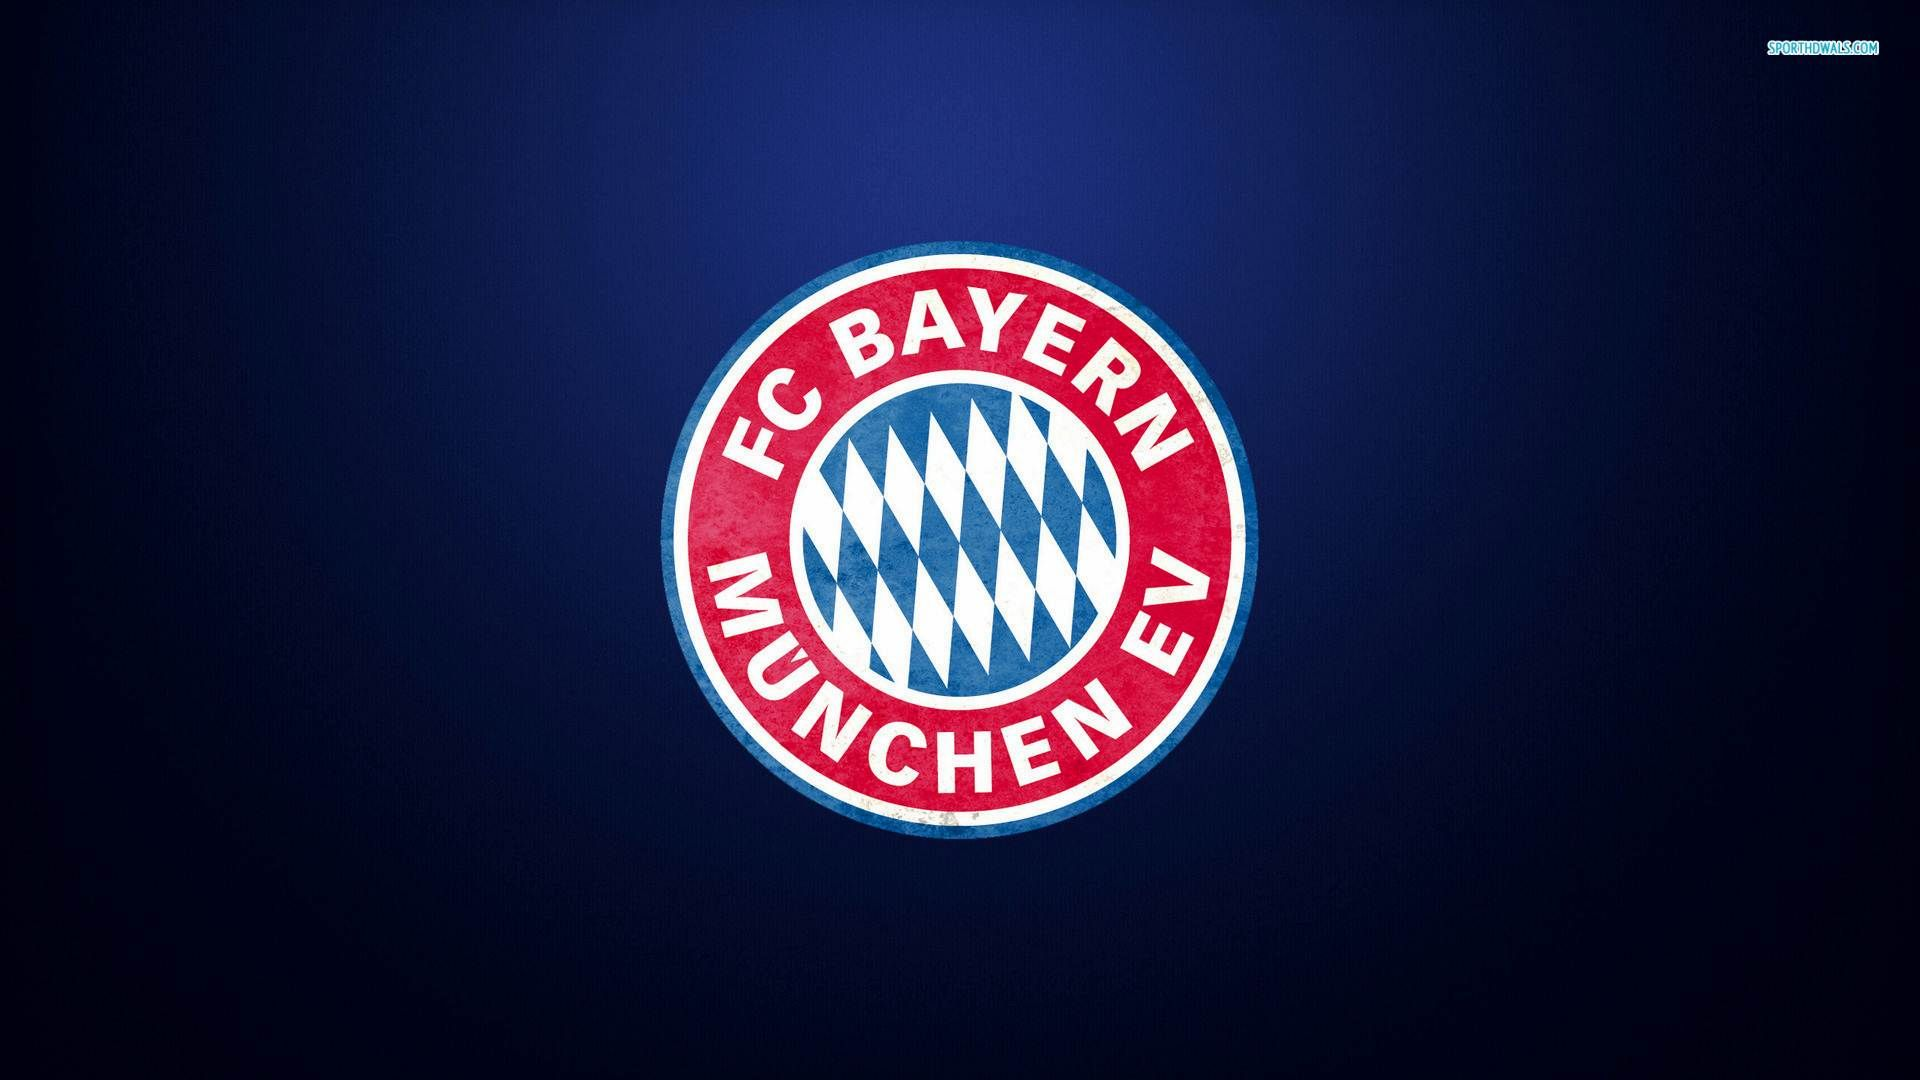 bayern munchen logo HD Wallpapers Download bayern munchen 1920x1080